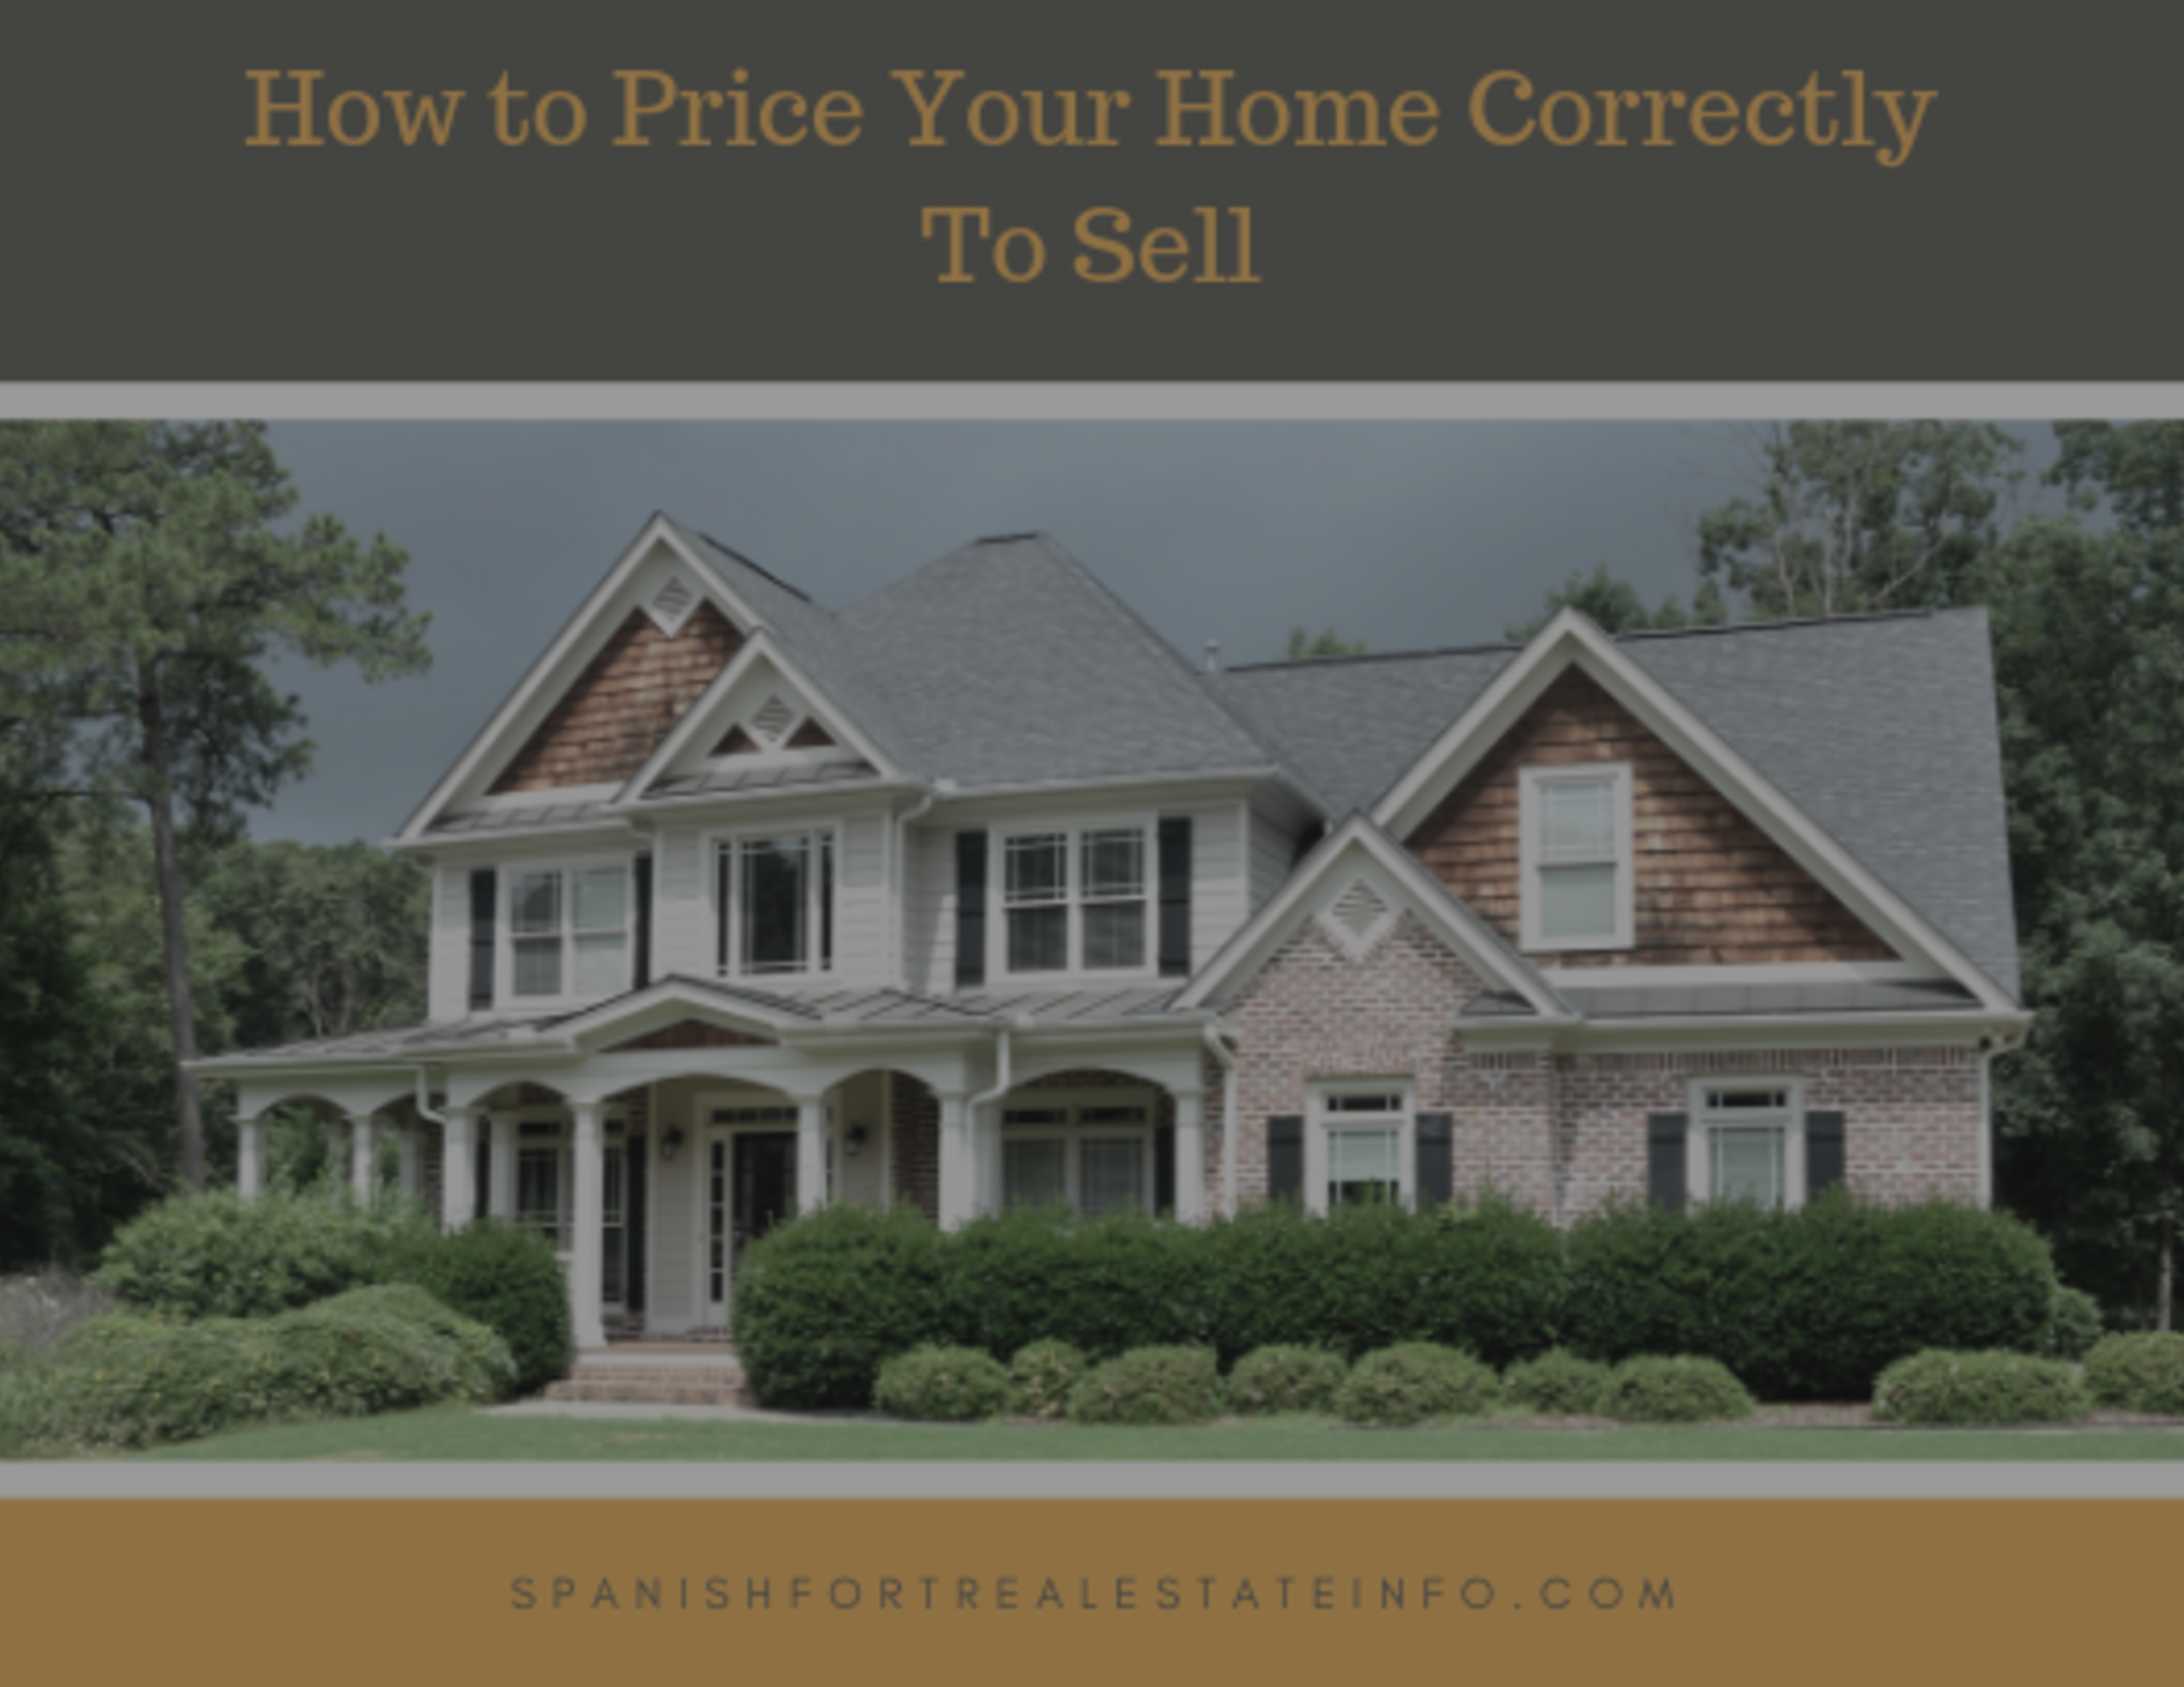 How to Price Your Home Correctly to Sell